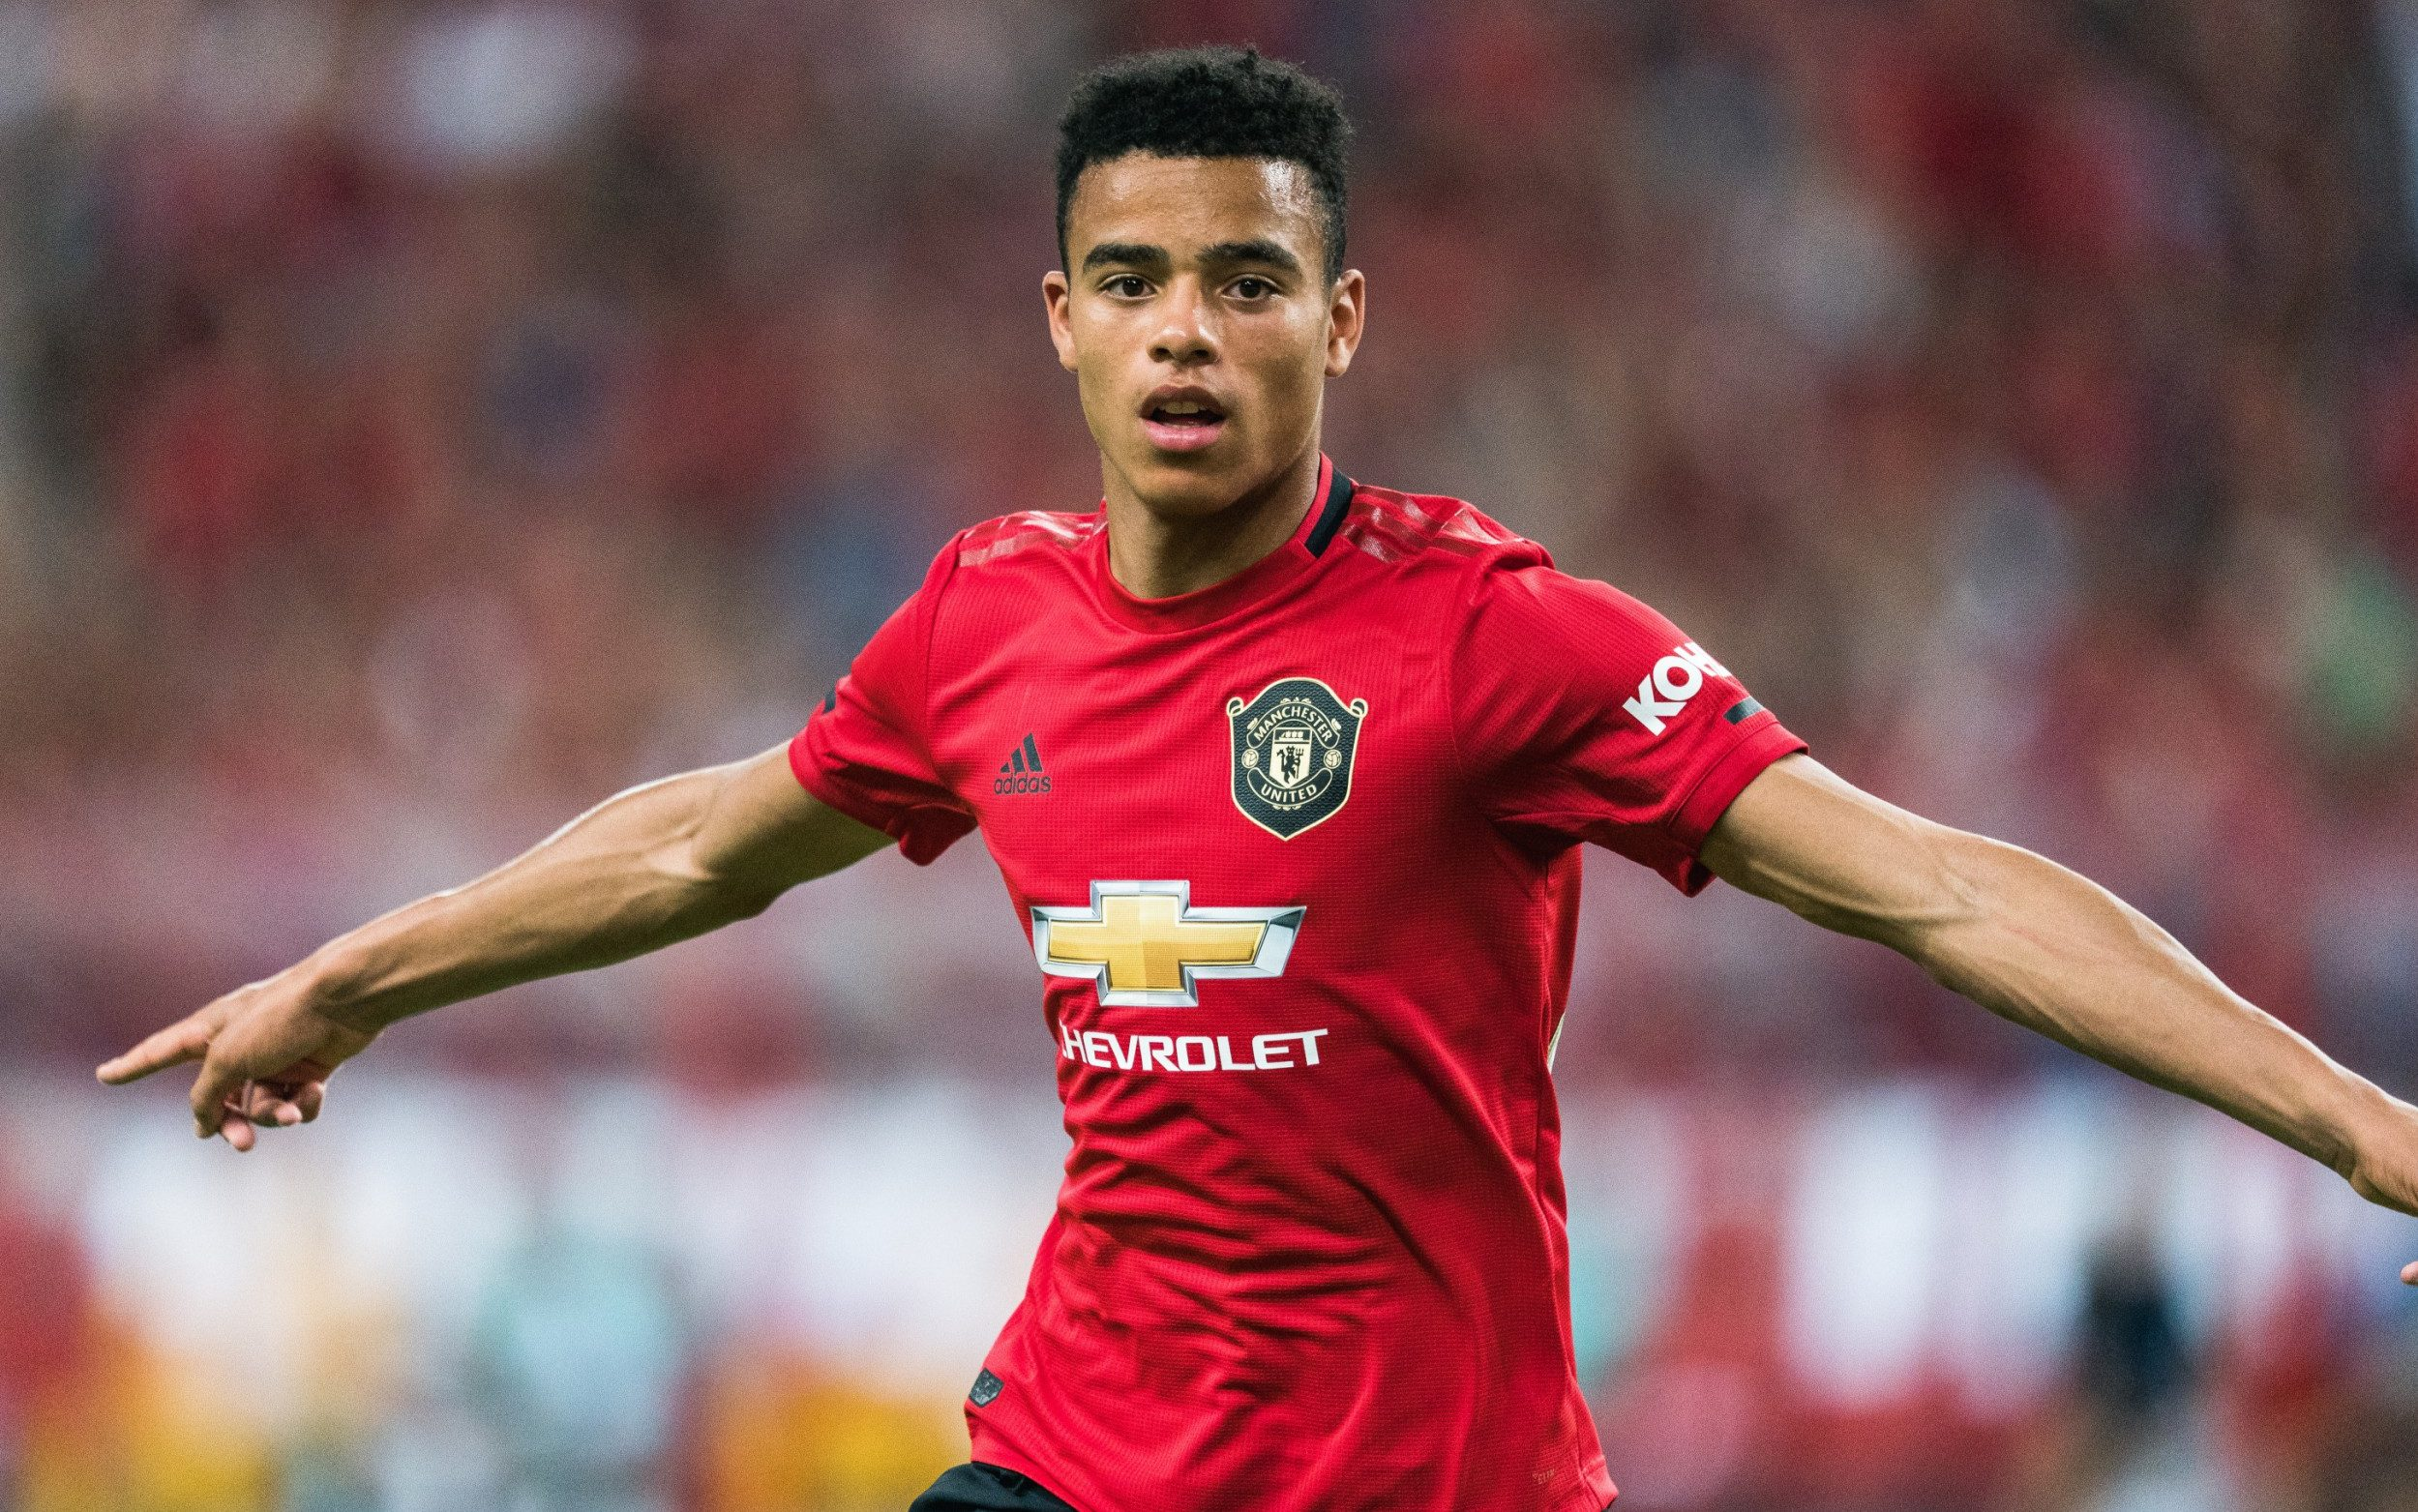 Manchester United teenager Mason Greenwood has the talent to go right to  the very top - Sportindepth